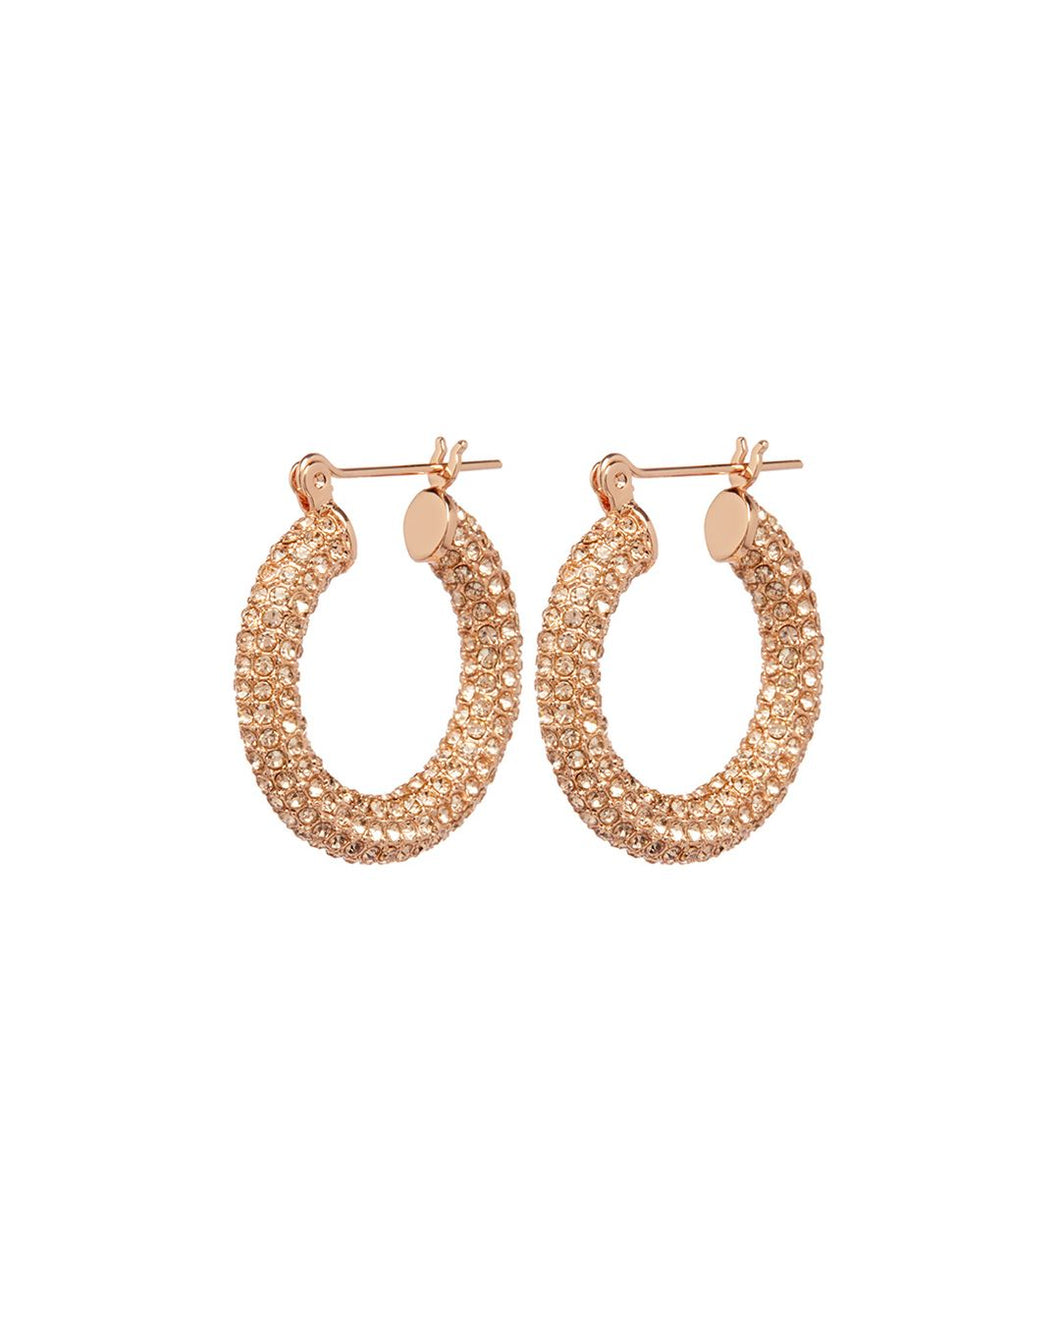 Pave Baby Amalfi Hoops in Rose Gold with Peach Crystals